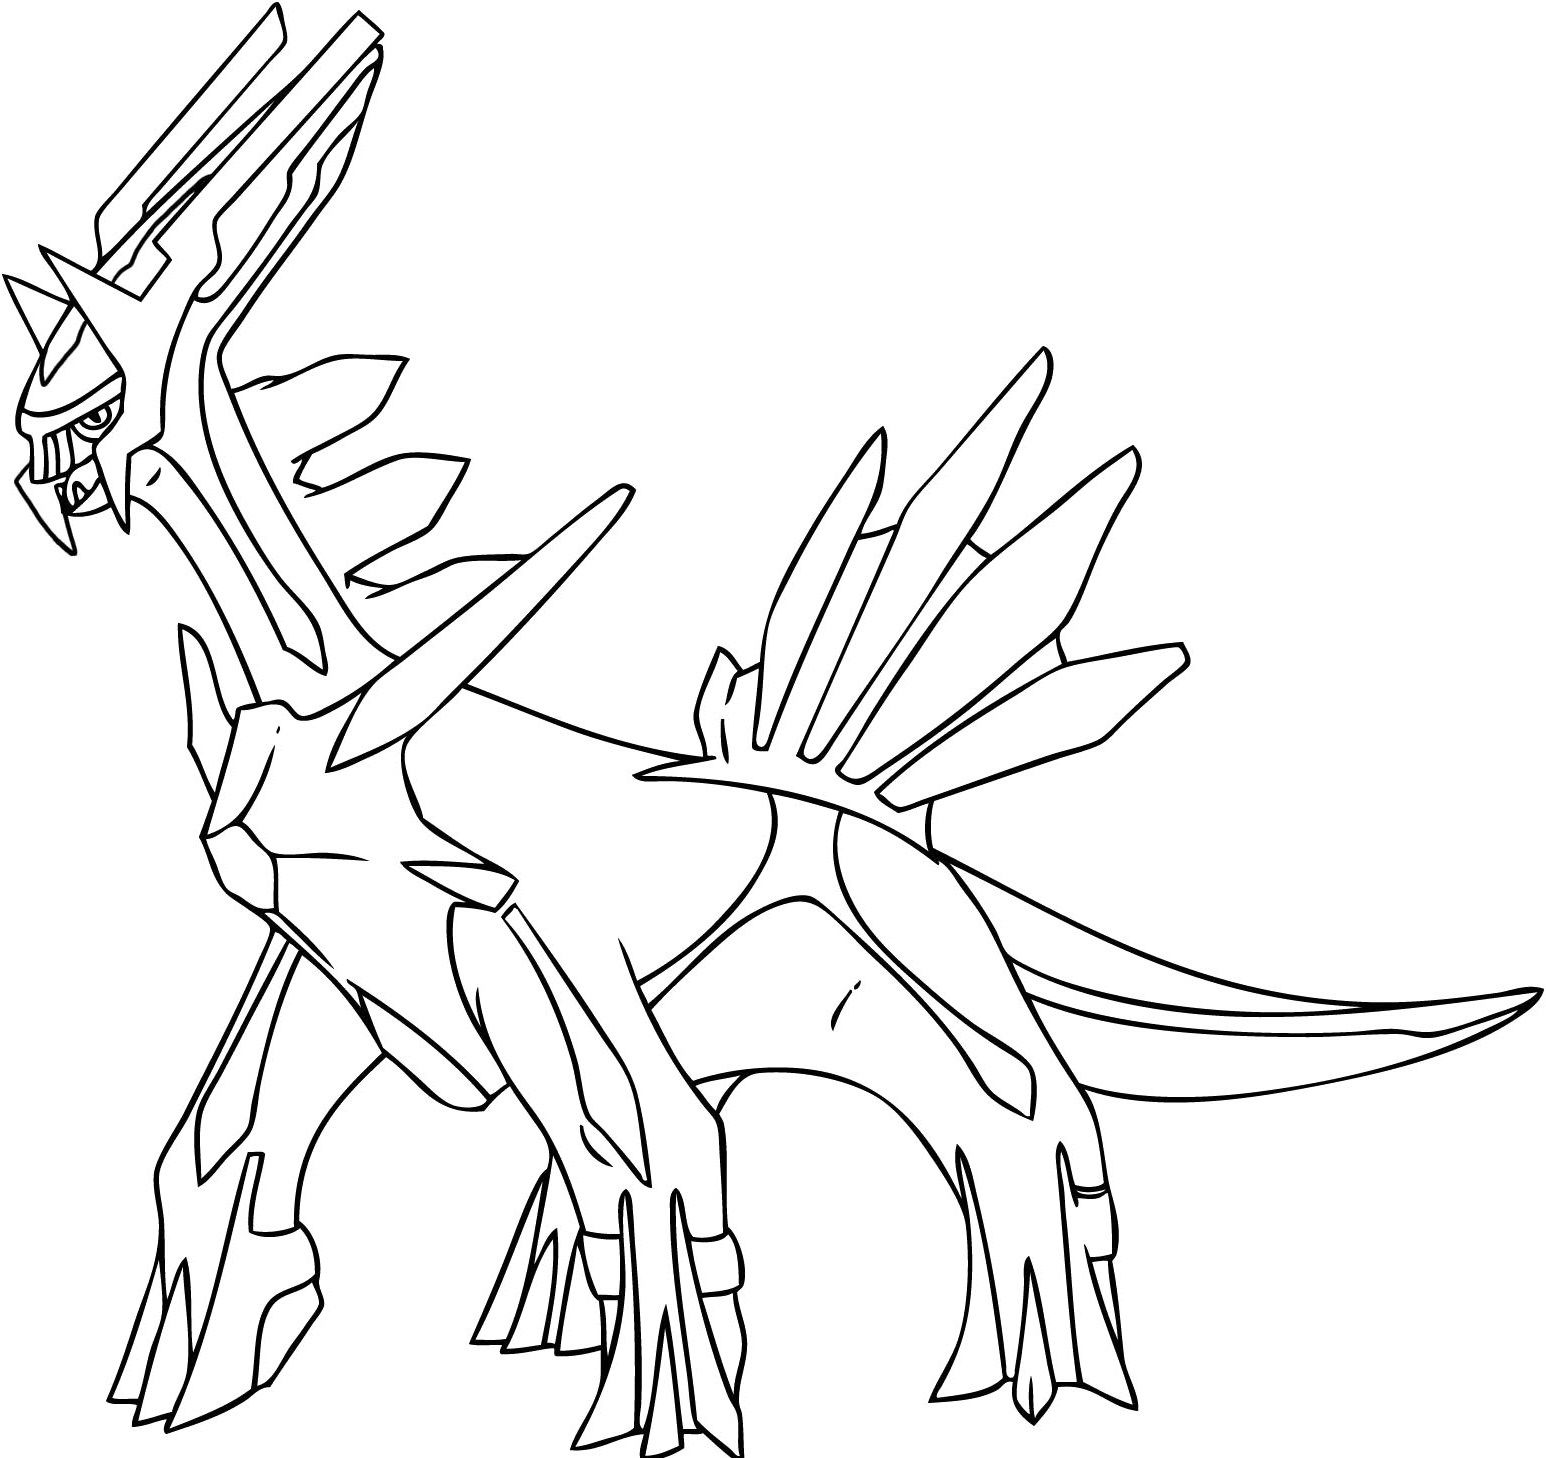 Big Dragon Pokemon Coloring Pages Mit Bildern Bastelarbeiten